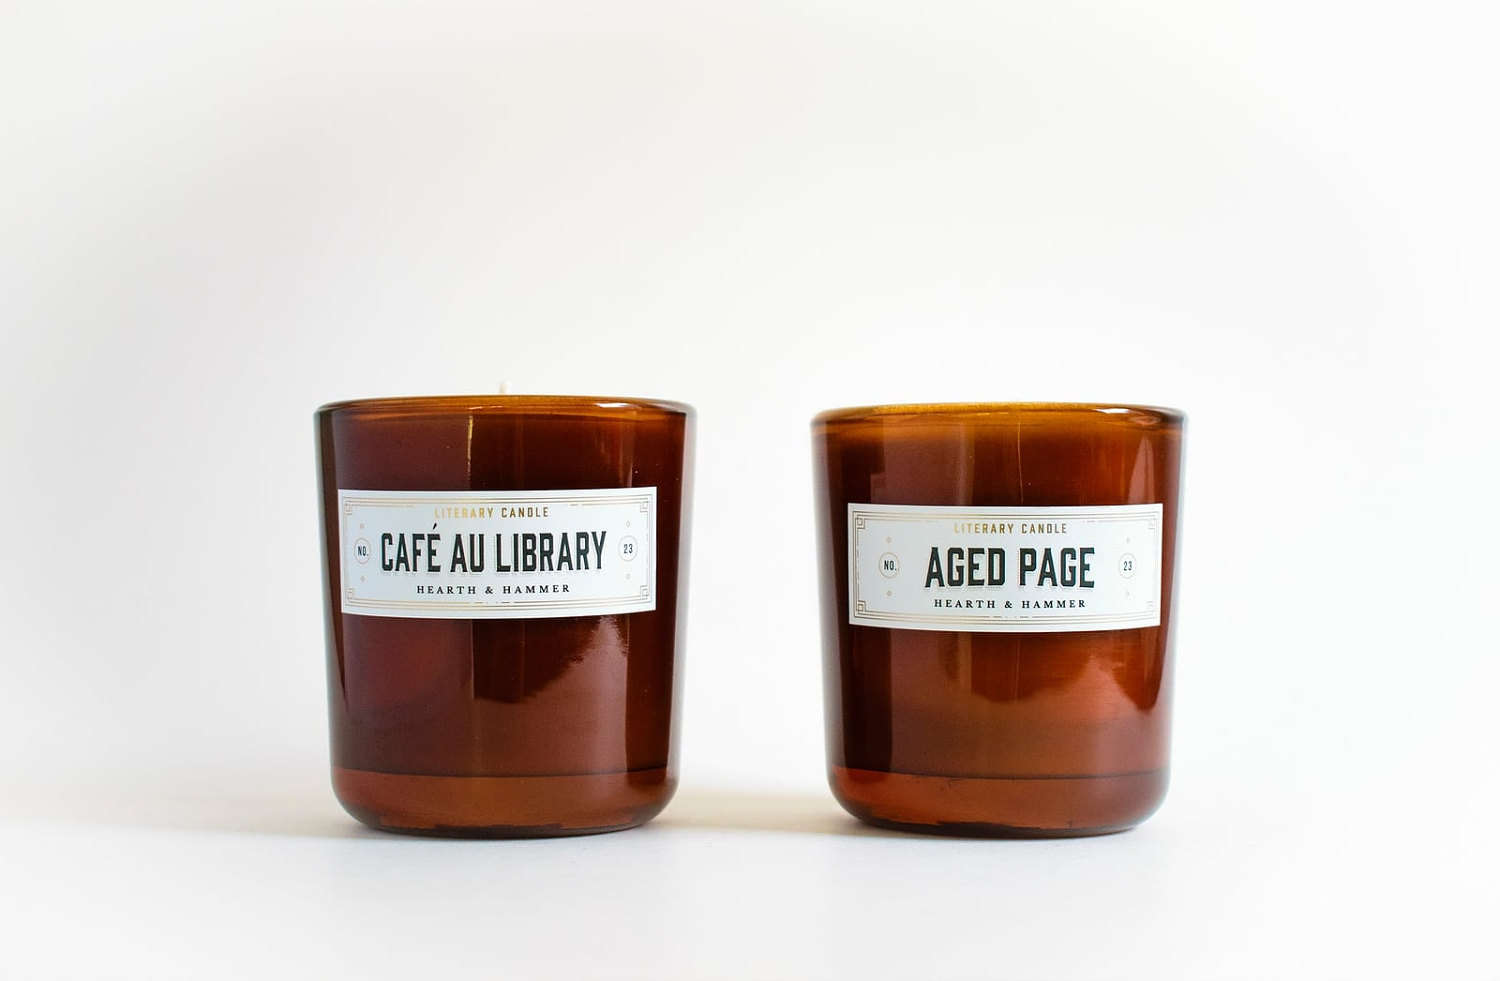 wedding-registry-ideas-for-book-lovers-candles-etsy